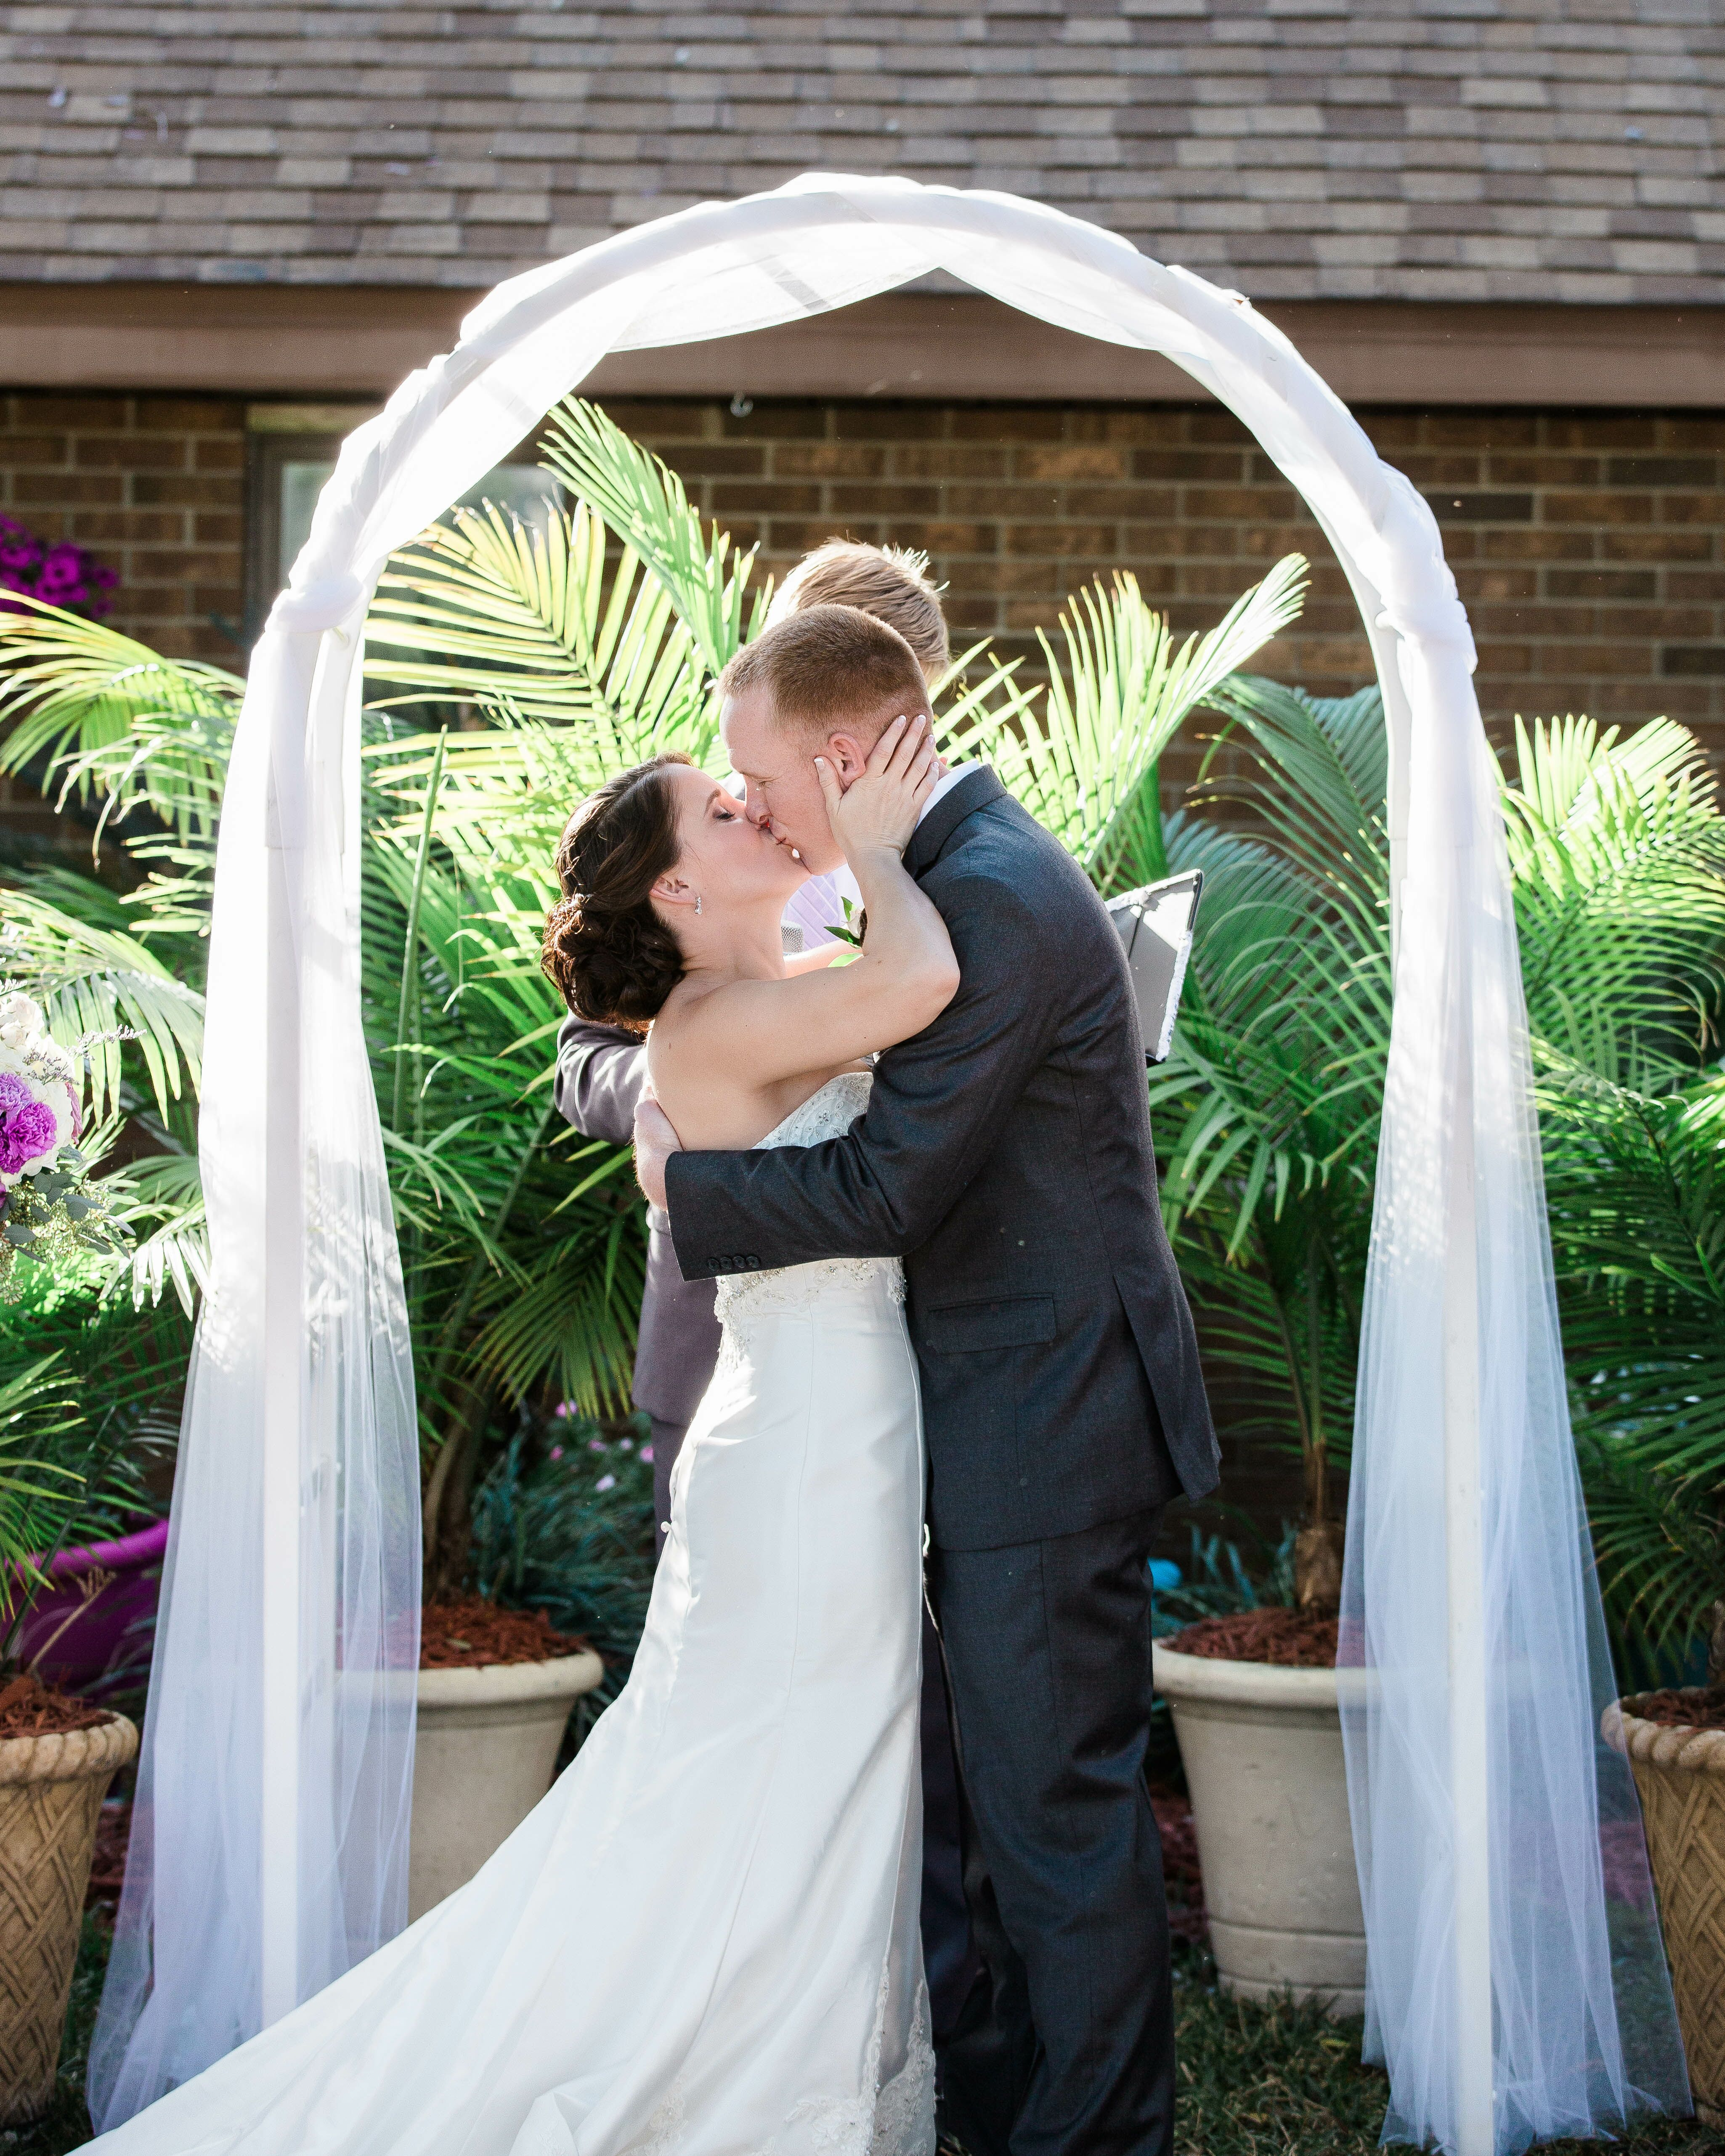 Wedding Arch Decorated With Tulle: Simple White Tulle-Draped Wedding Arch In Lakeland, Florida